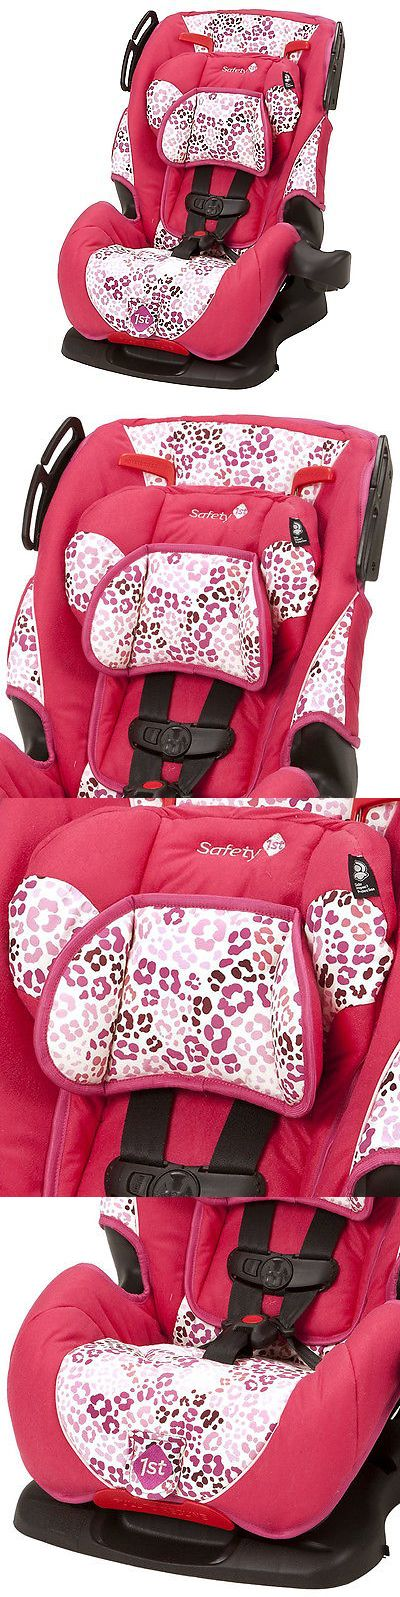 Convertible Car Seat 5-40lbs 66695: Safety 1St All-In-1 Convertible Multi-Position Car Seat, Ruby | Cc068cwi -> BUY IT NOW ONLY: $89.99 on eBay!